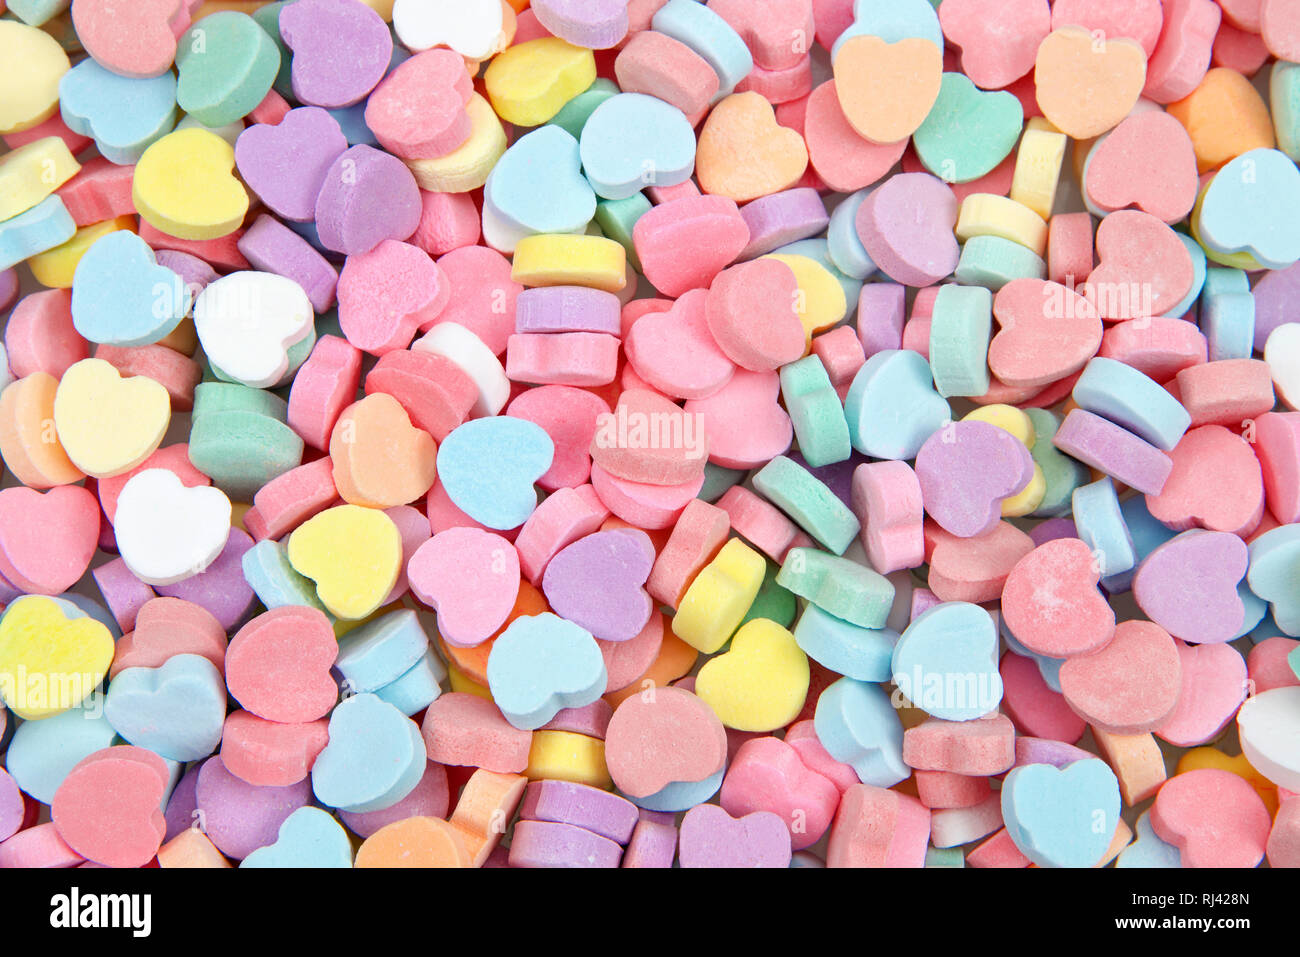 Background of brightly colored candy hearts for Valentine's Day. - Stock Image